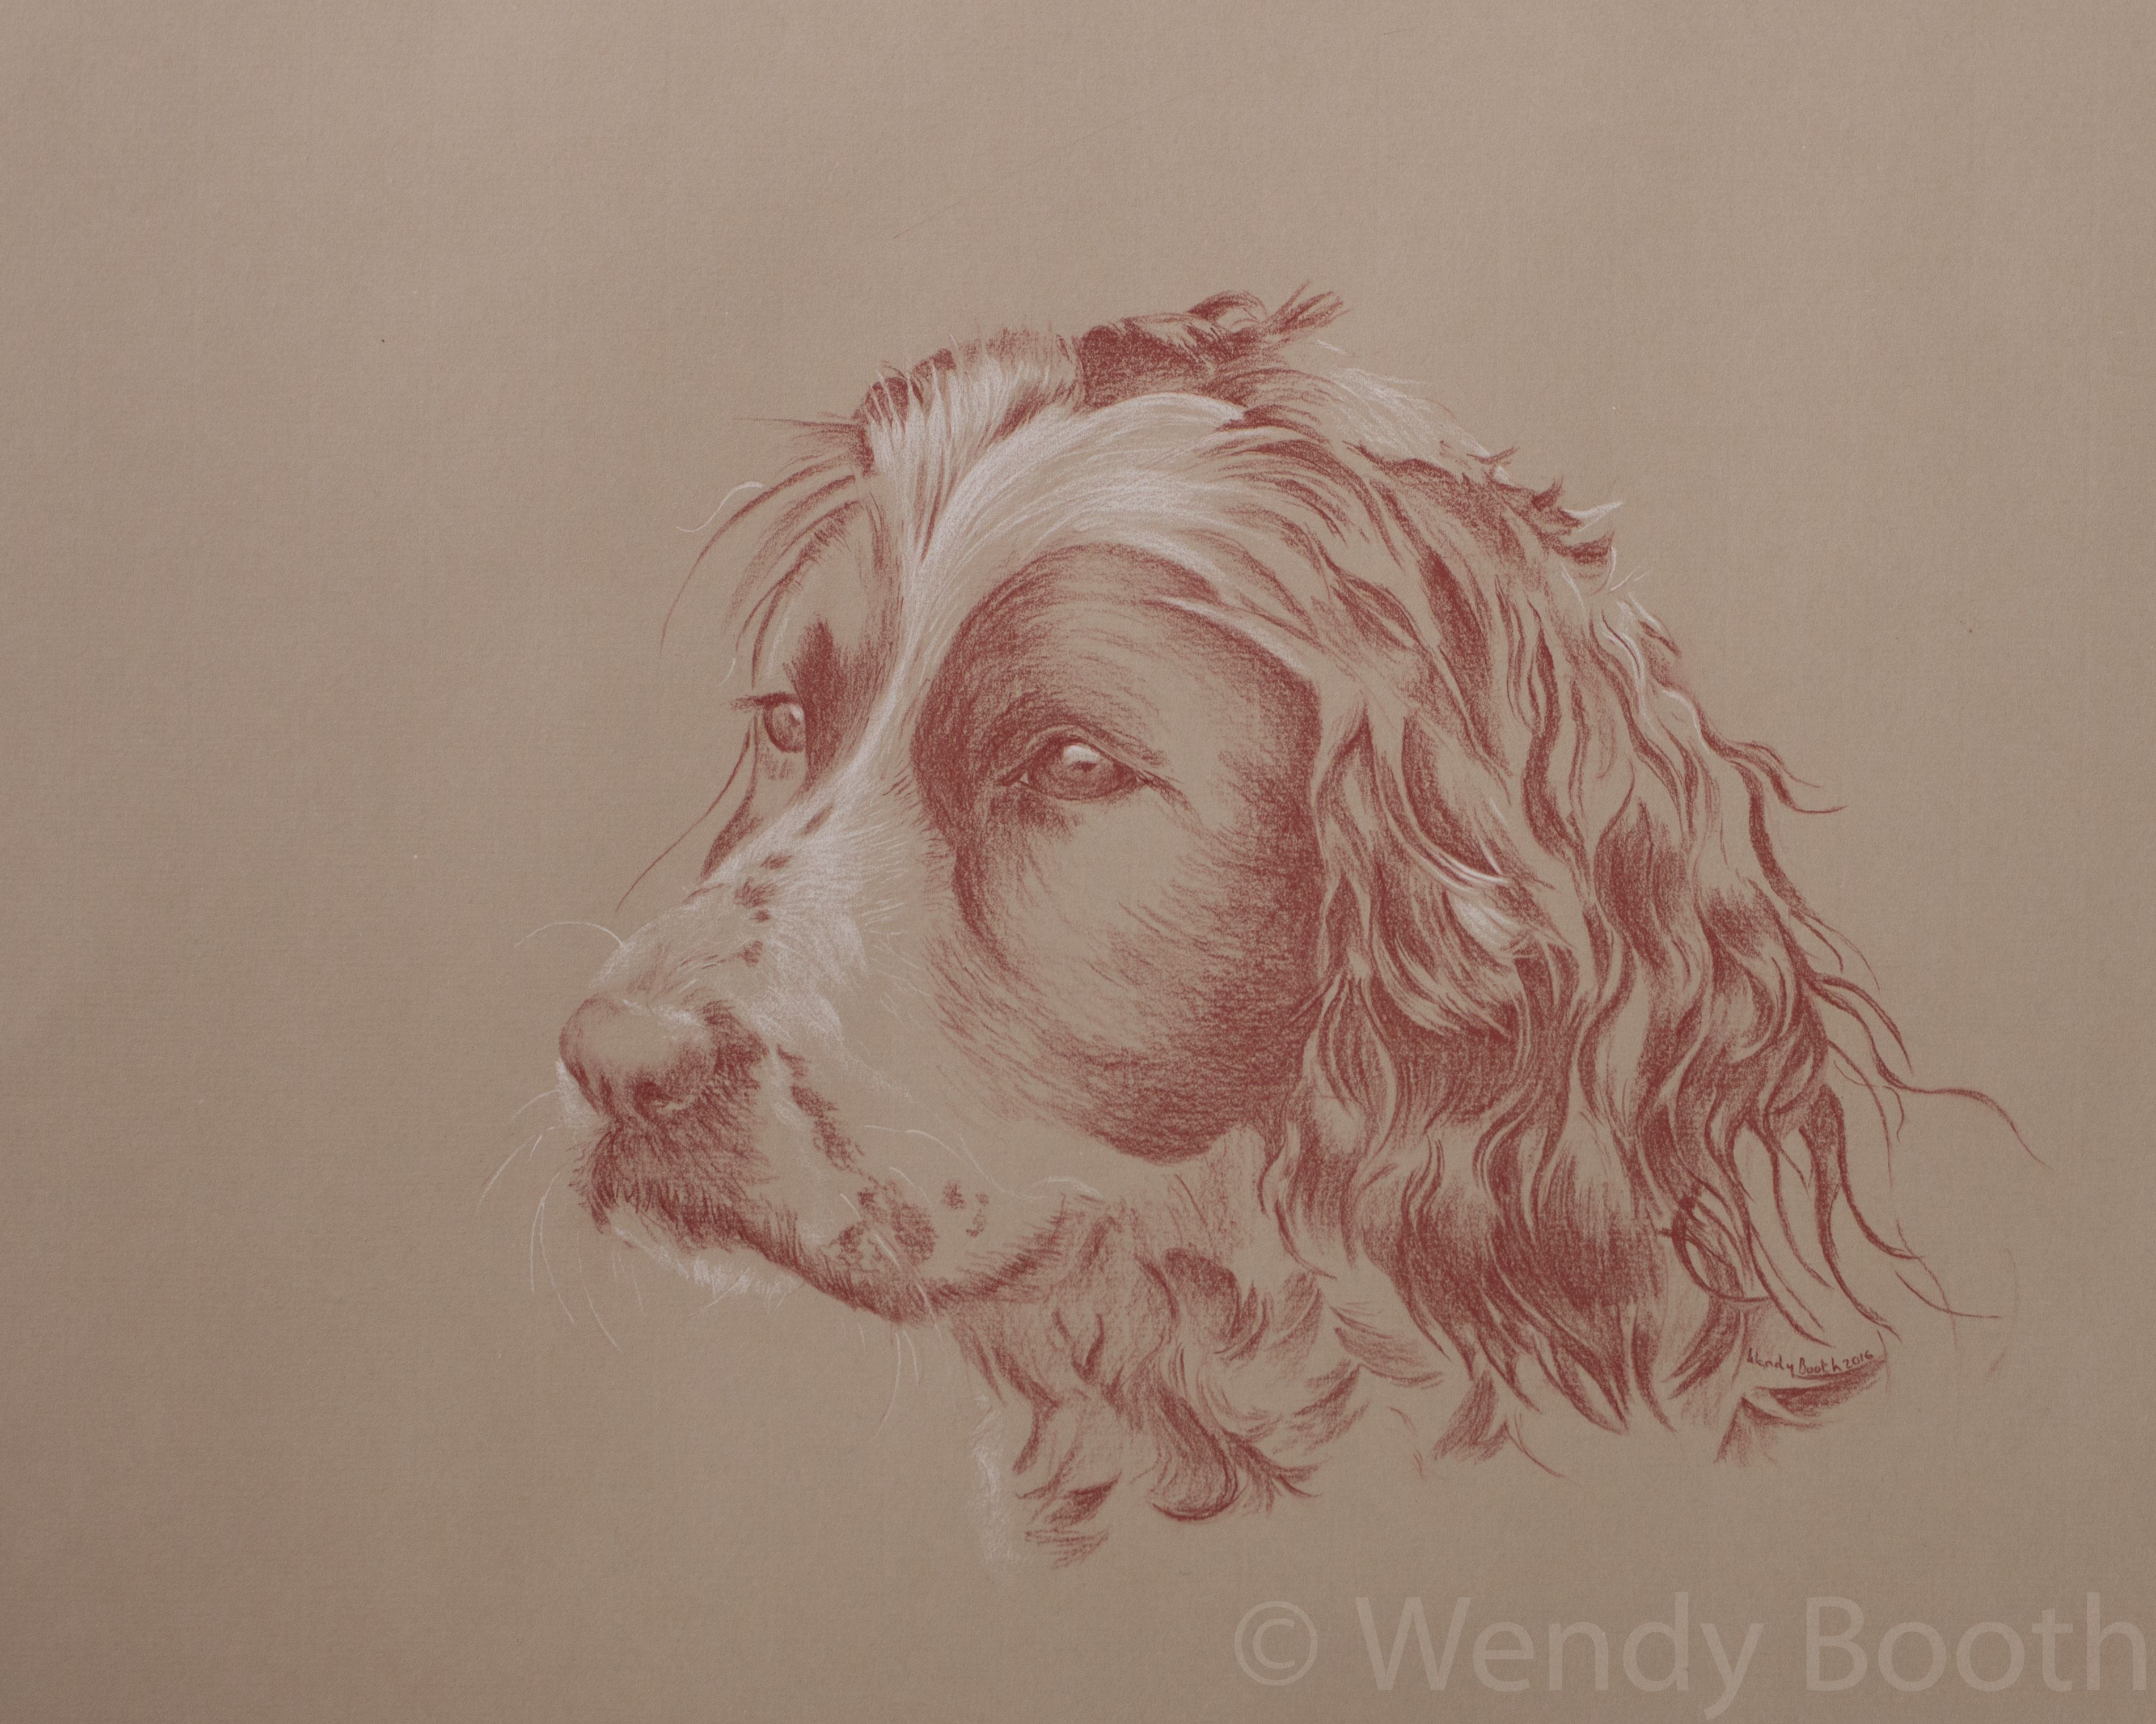 Pet Portrait Artist. So many waves and curls in this Spaniel's ears - but the reward is always worth the challenge.